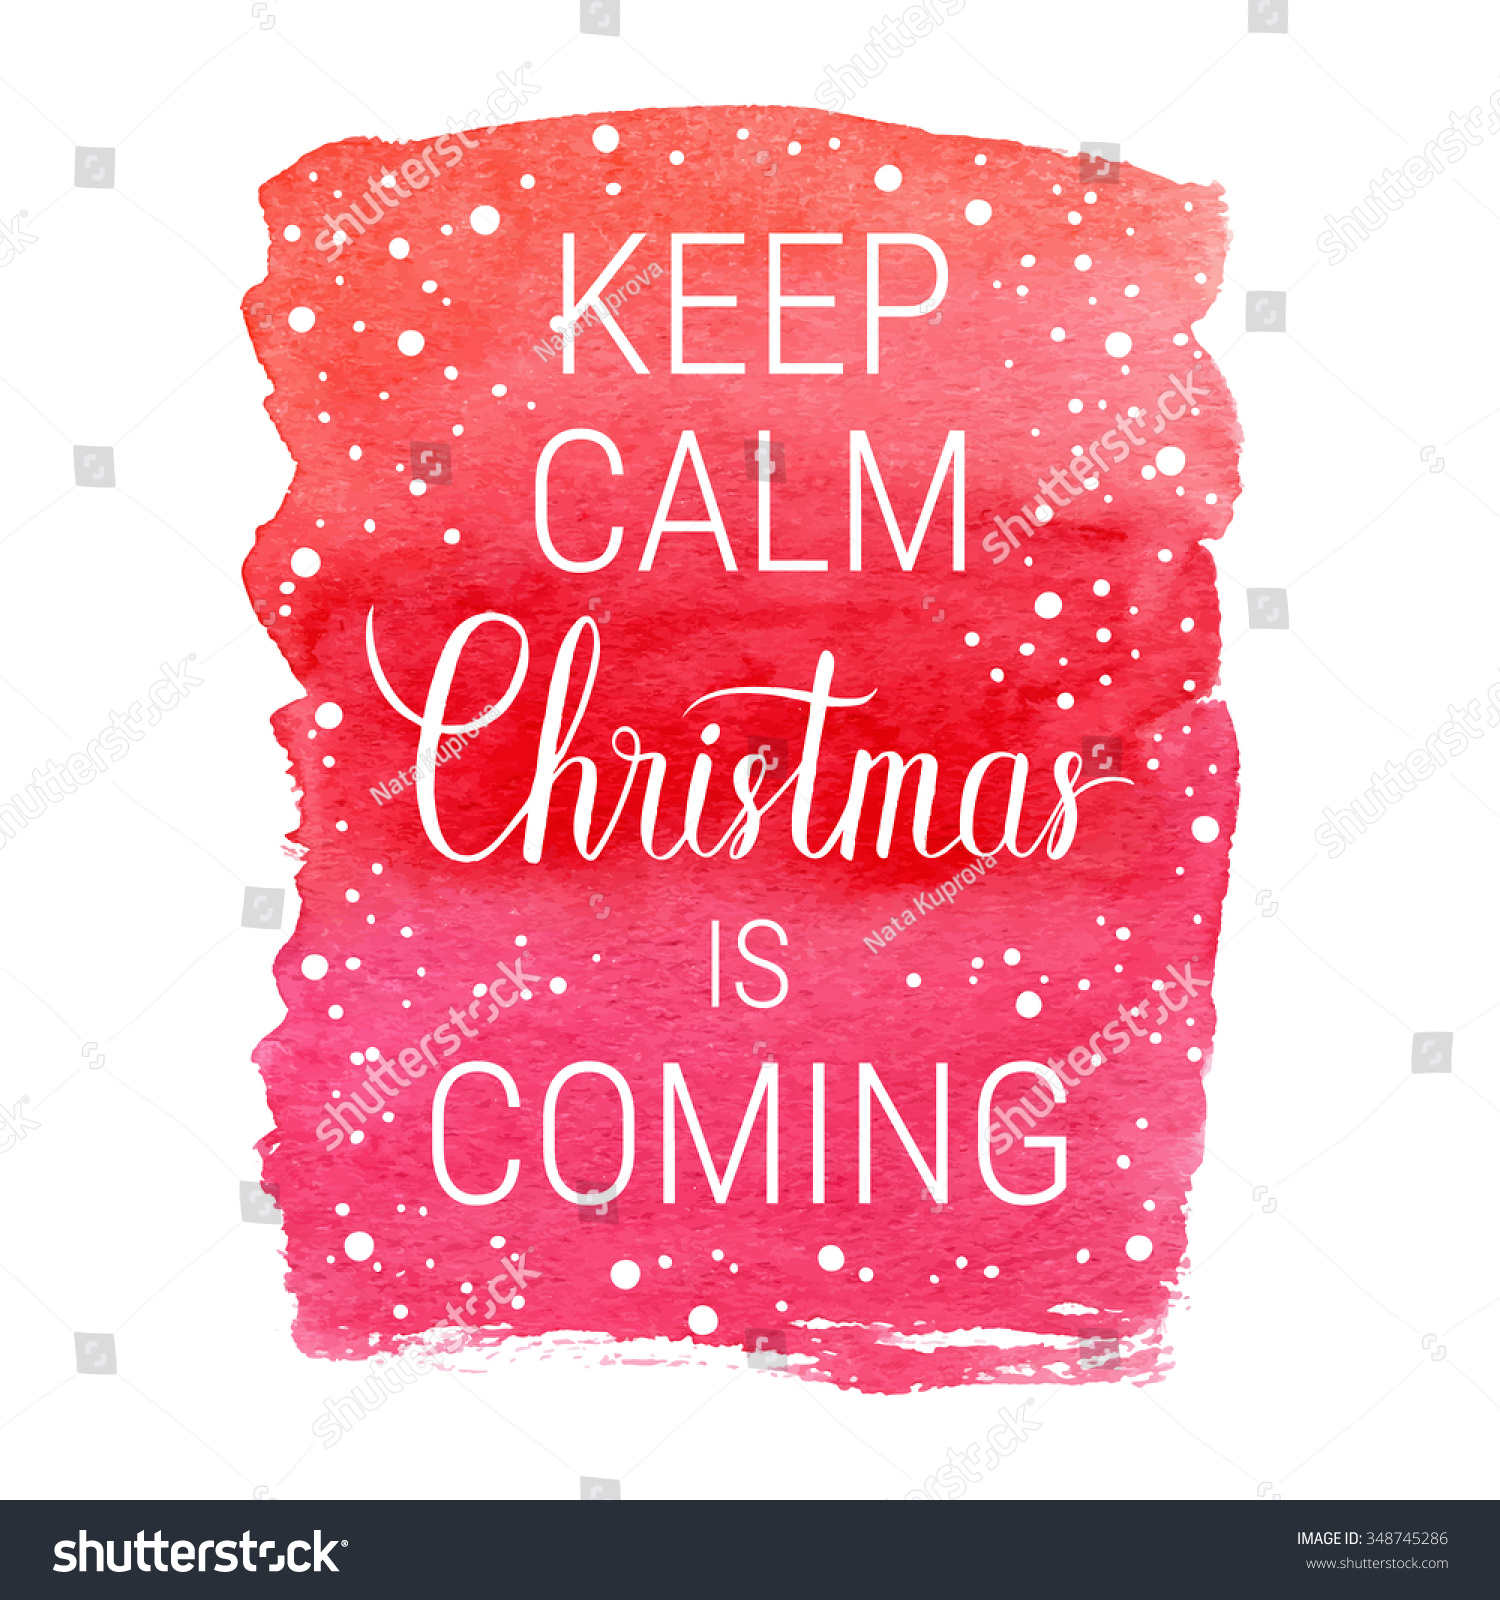 Keep Calm Christmas Coming Poster Vector Stock Vector (Royalty Free ...